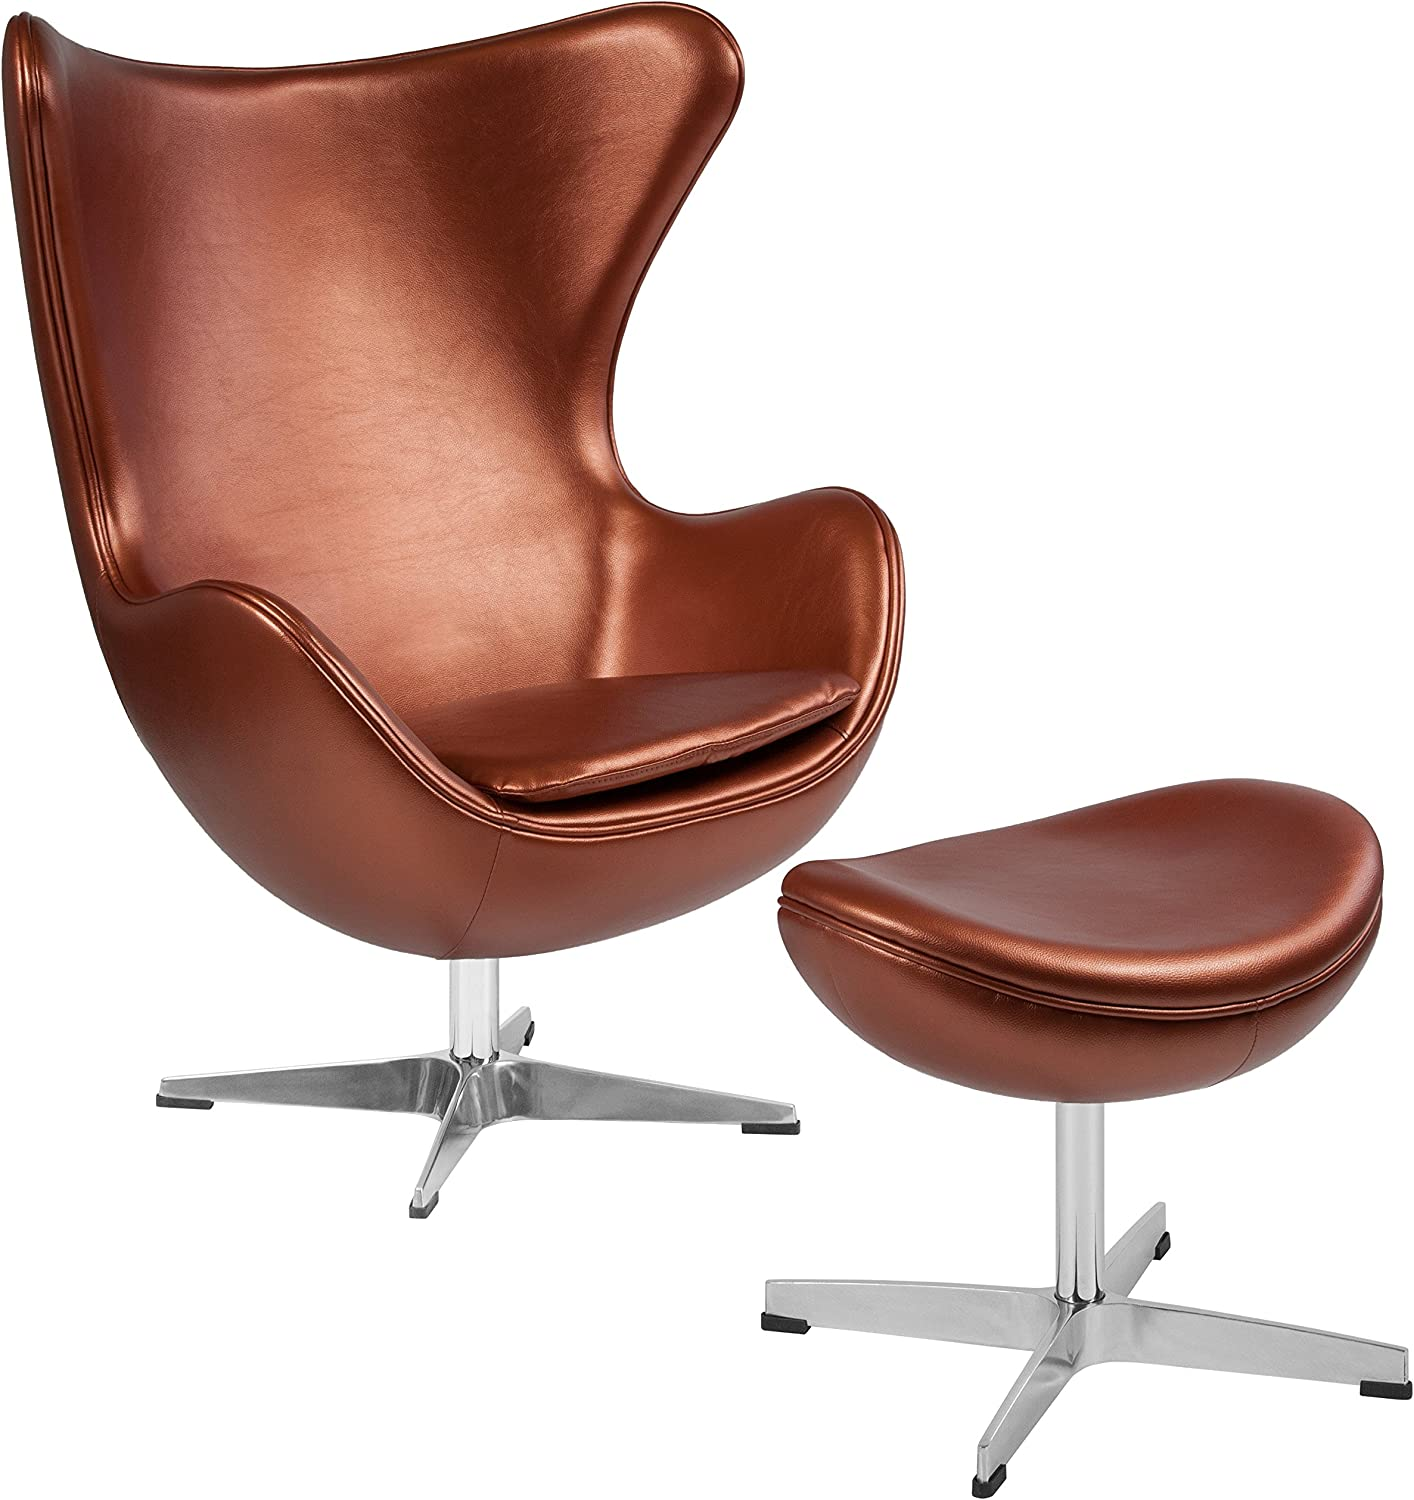 Flash Furniture Copper LeatherSoft Egg Chair with Tilt-Lock Mechanism and Ottoman